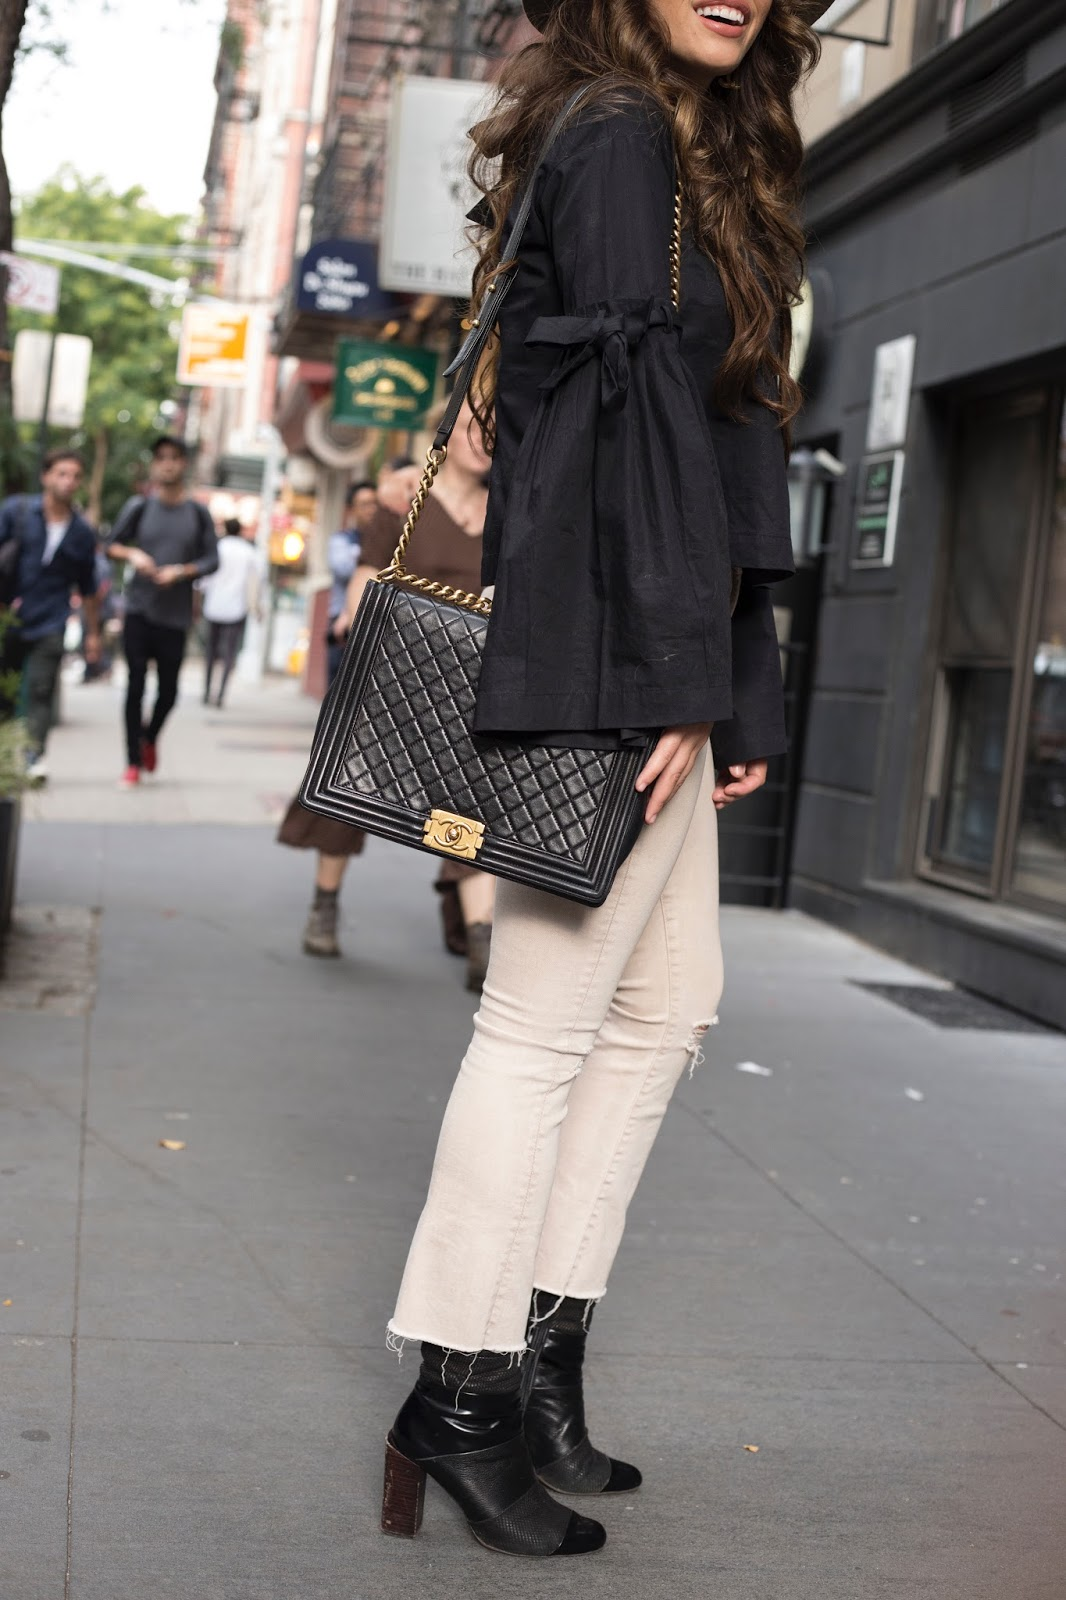 fall fashion, black and cream, black long sleeve top, nyc fall fashion, nyc fashion, how to dress for nyc in the fall, nyc blogger style, blogger style, top bloggers nyc, free people top, free people long sleeve black top, mother jeans, chanel boy bag xl, xl black and gold chanel boy bag, chanel double c earrings, chanel earrings, gold chanel earrings, elle harper blog, elle harper, elle harper nyc, long brown hair, khaki denim, janessa leone hat, brown janessa leone, how to dress for fall, black booties, new bloggers